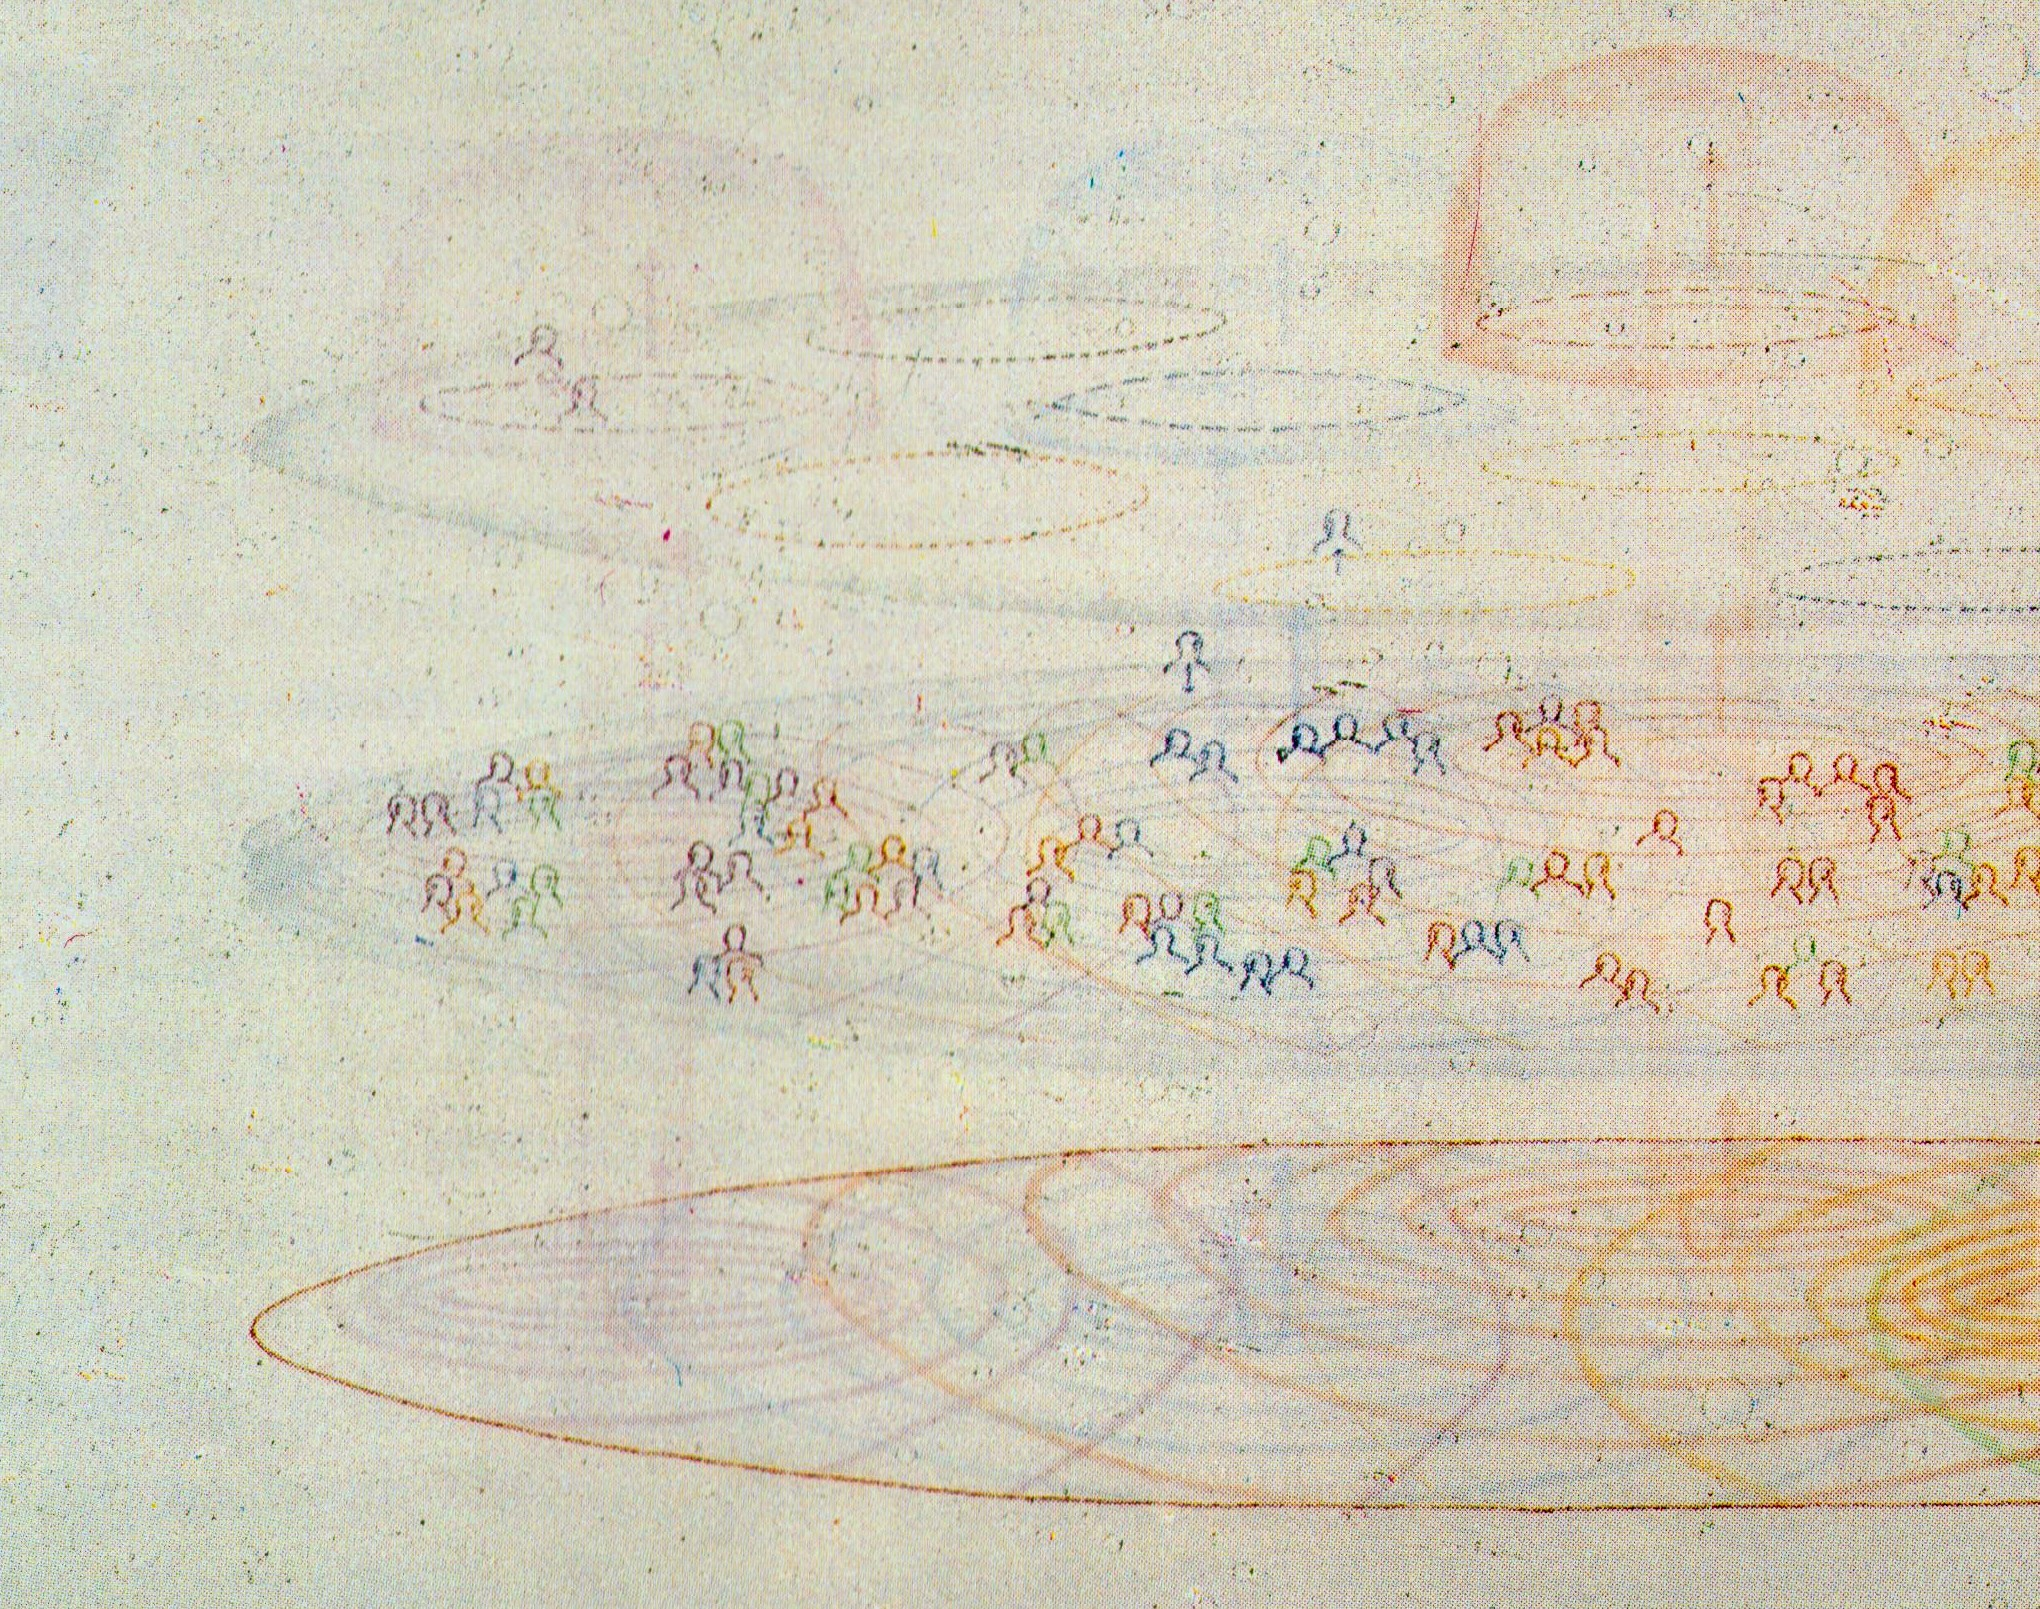 Max Neuhaus, Audium, 1980, detail, pencil on paper, 95,5 x 120 cm (© Estate Max Neuhaus)